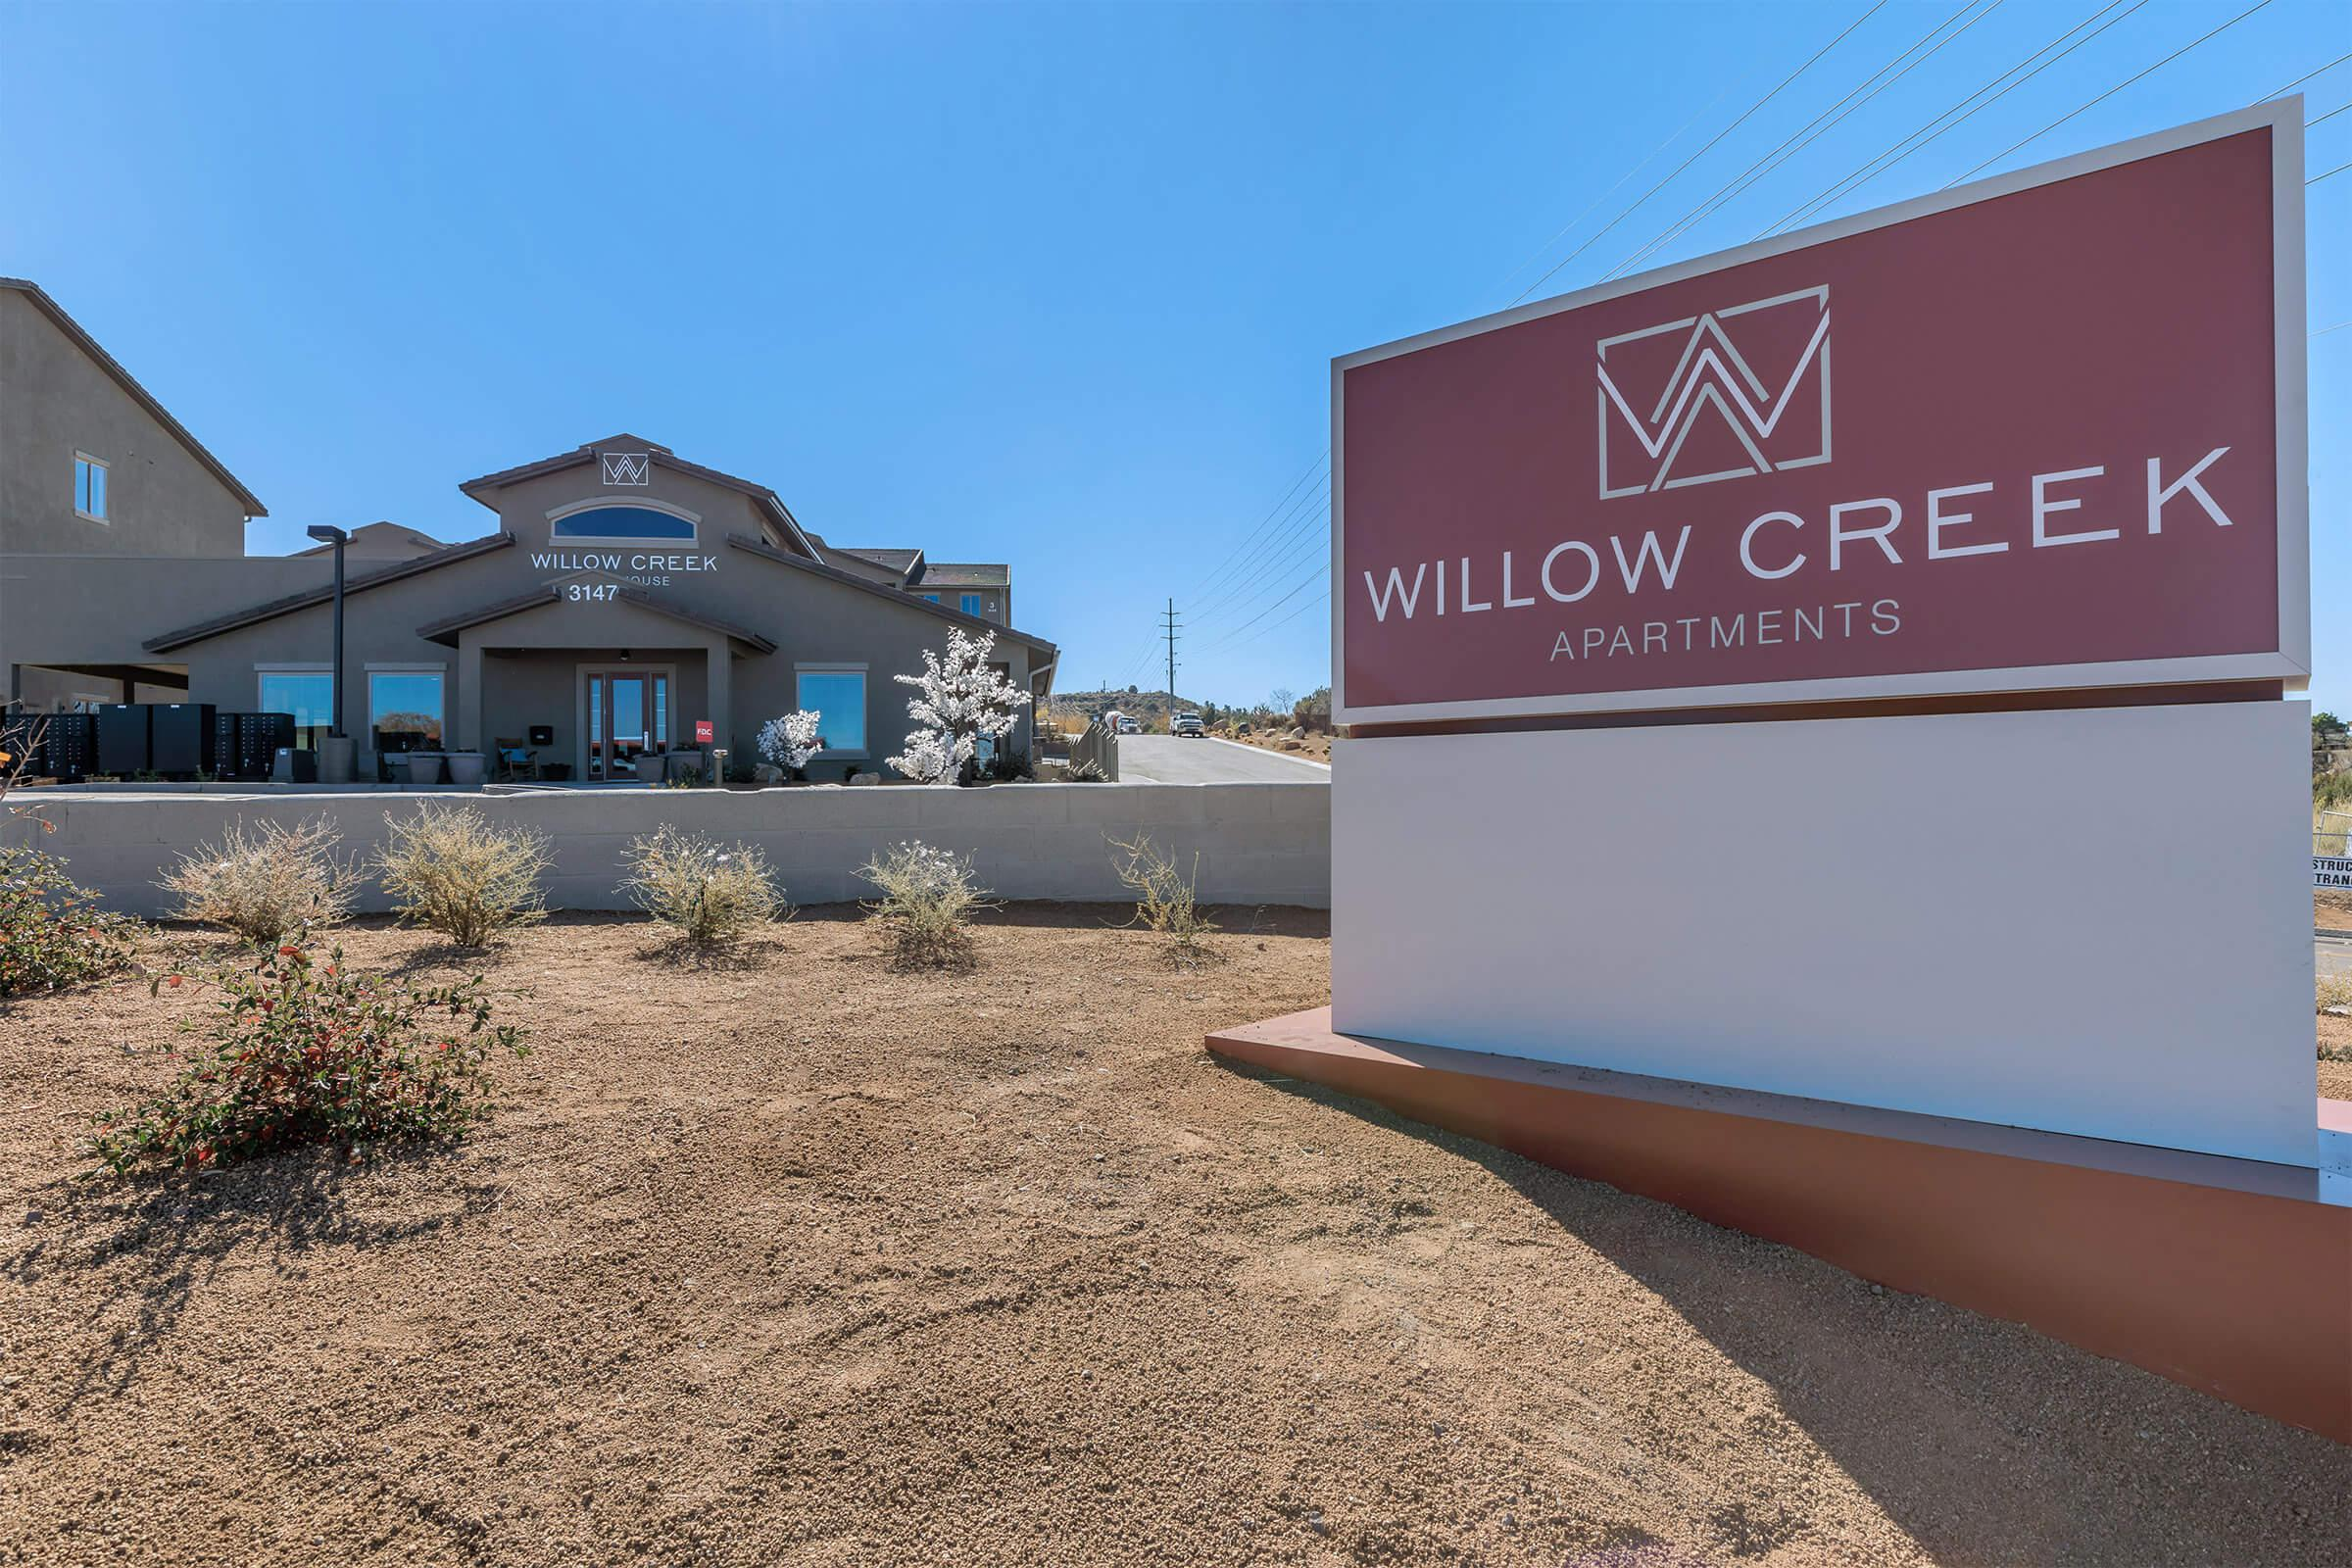 Picture of Willow Creek